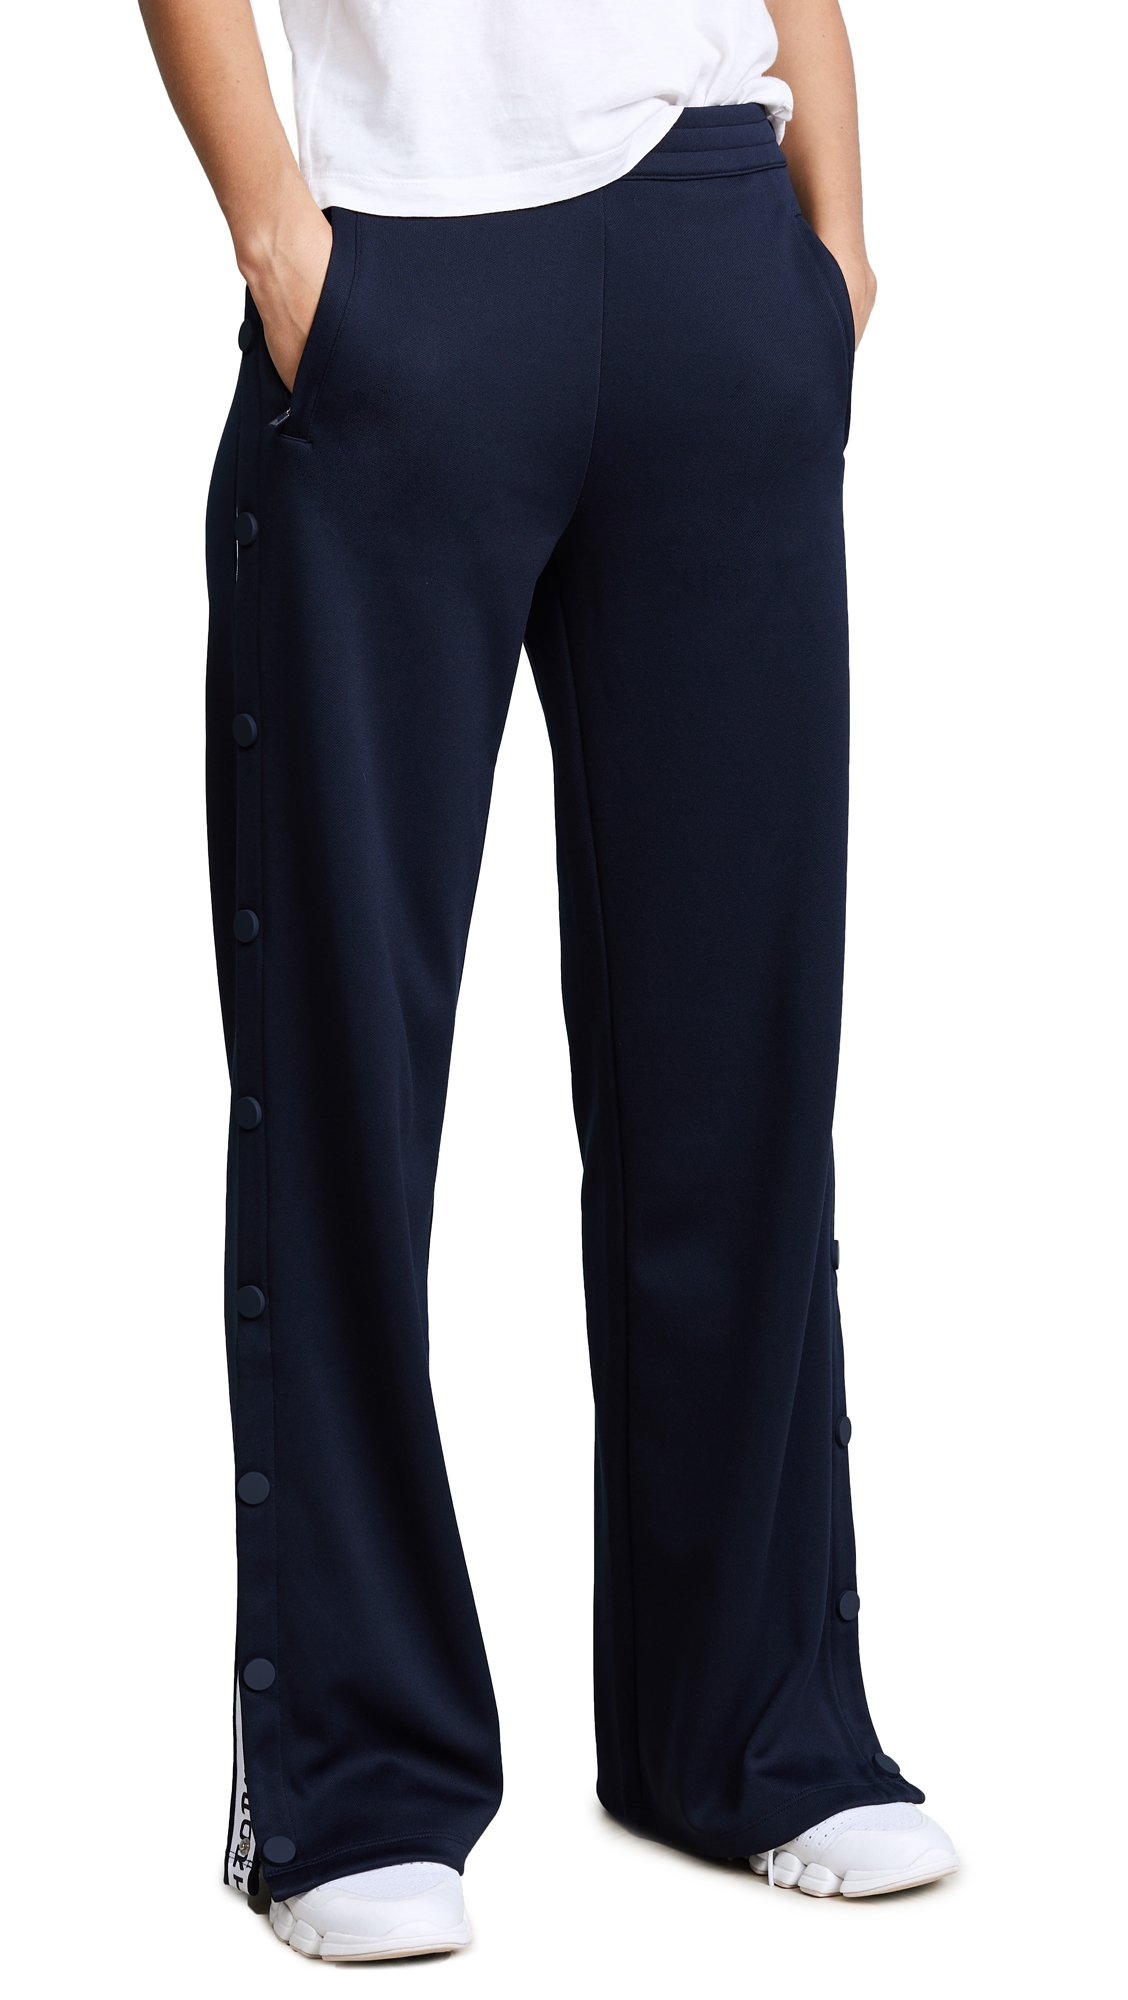 Tory Sport Women's Banner Tear Away Track Pants, Tory Navy, Large